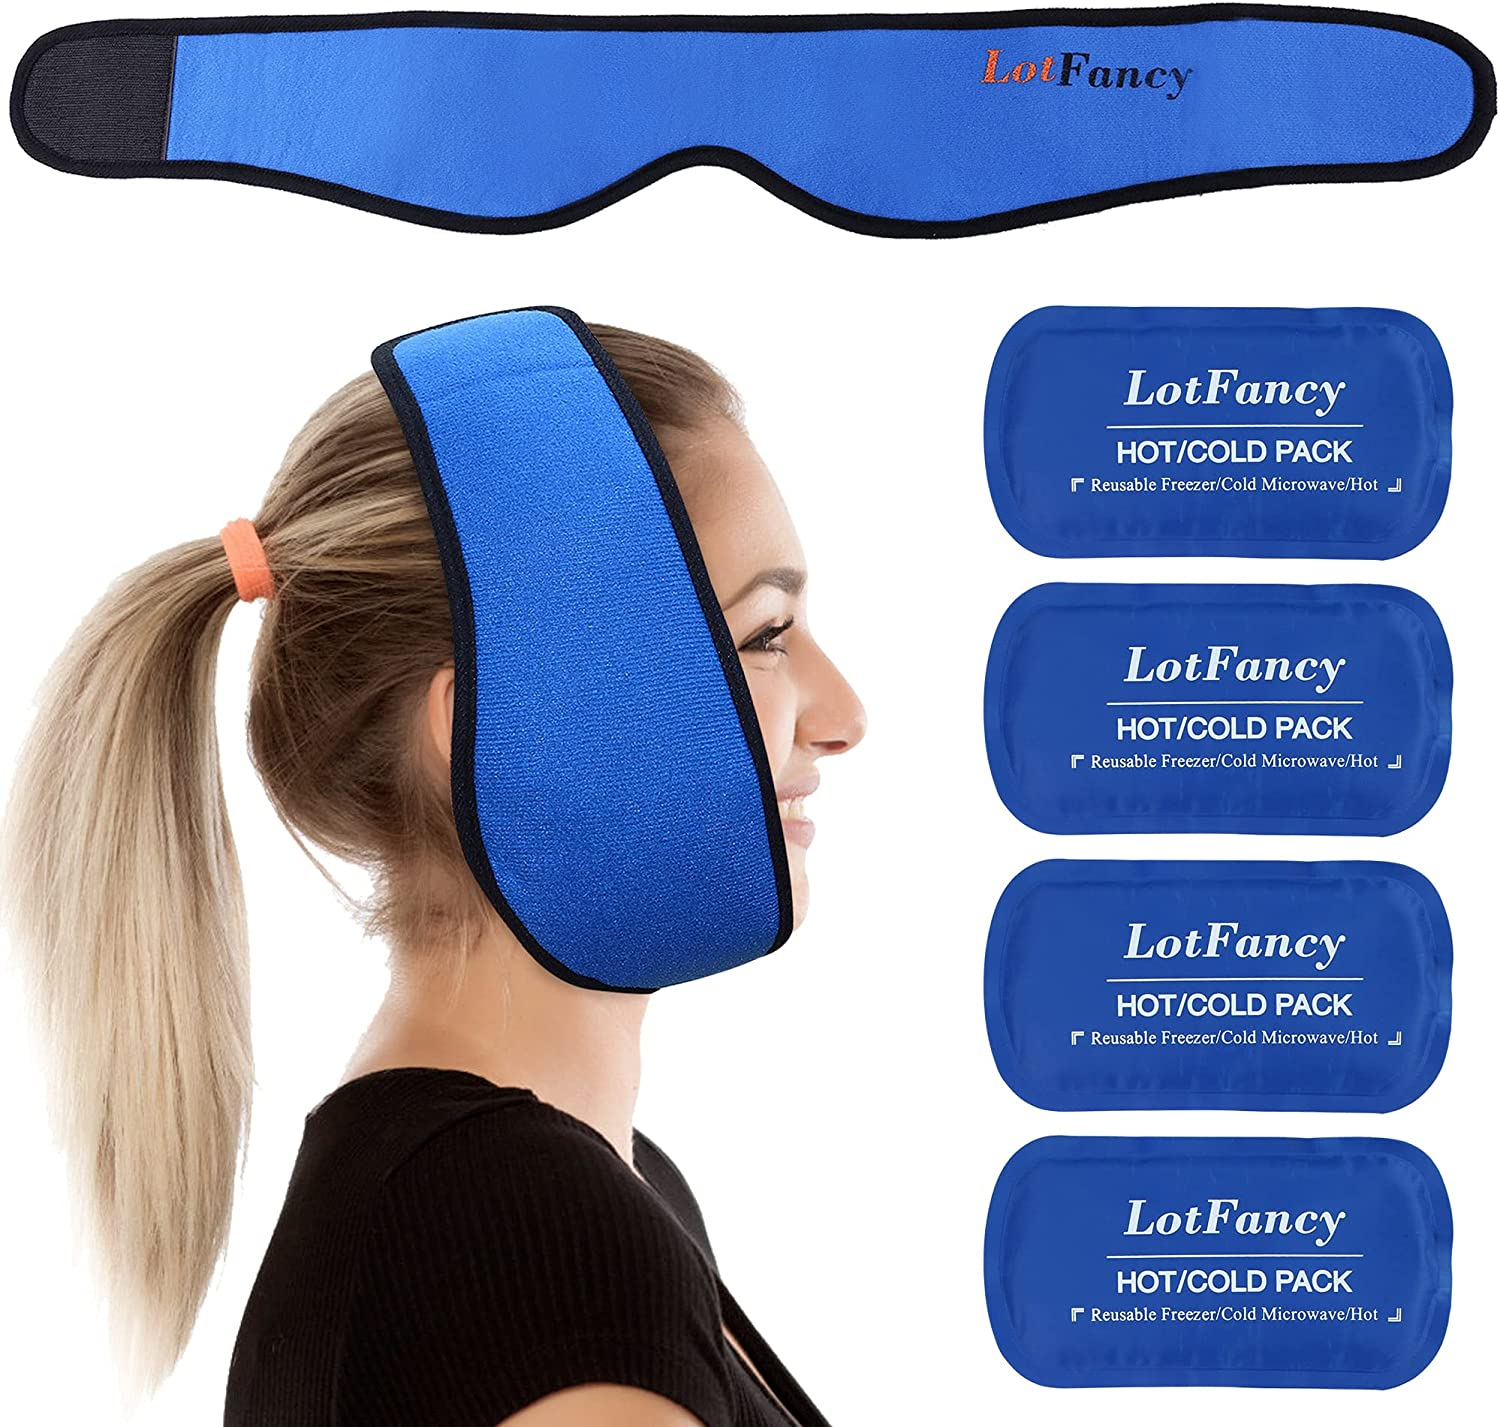 LotFancy Gel Ice Tampa Mall Pack with A surprise price is realized Wrap TMJ Relief Pain Tee for Wisdom